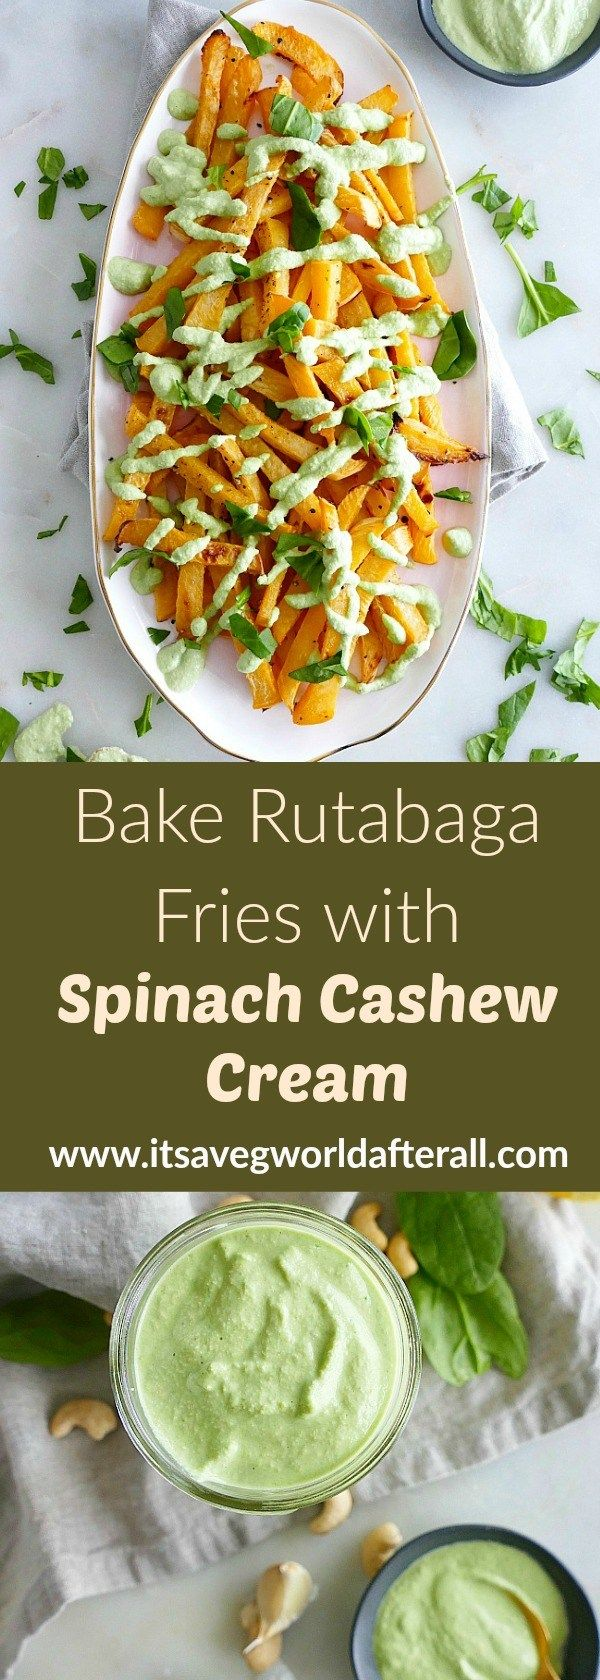 Baked Rutabaga Fries with Spinach Cashew Cream